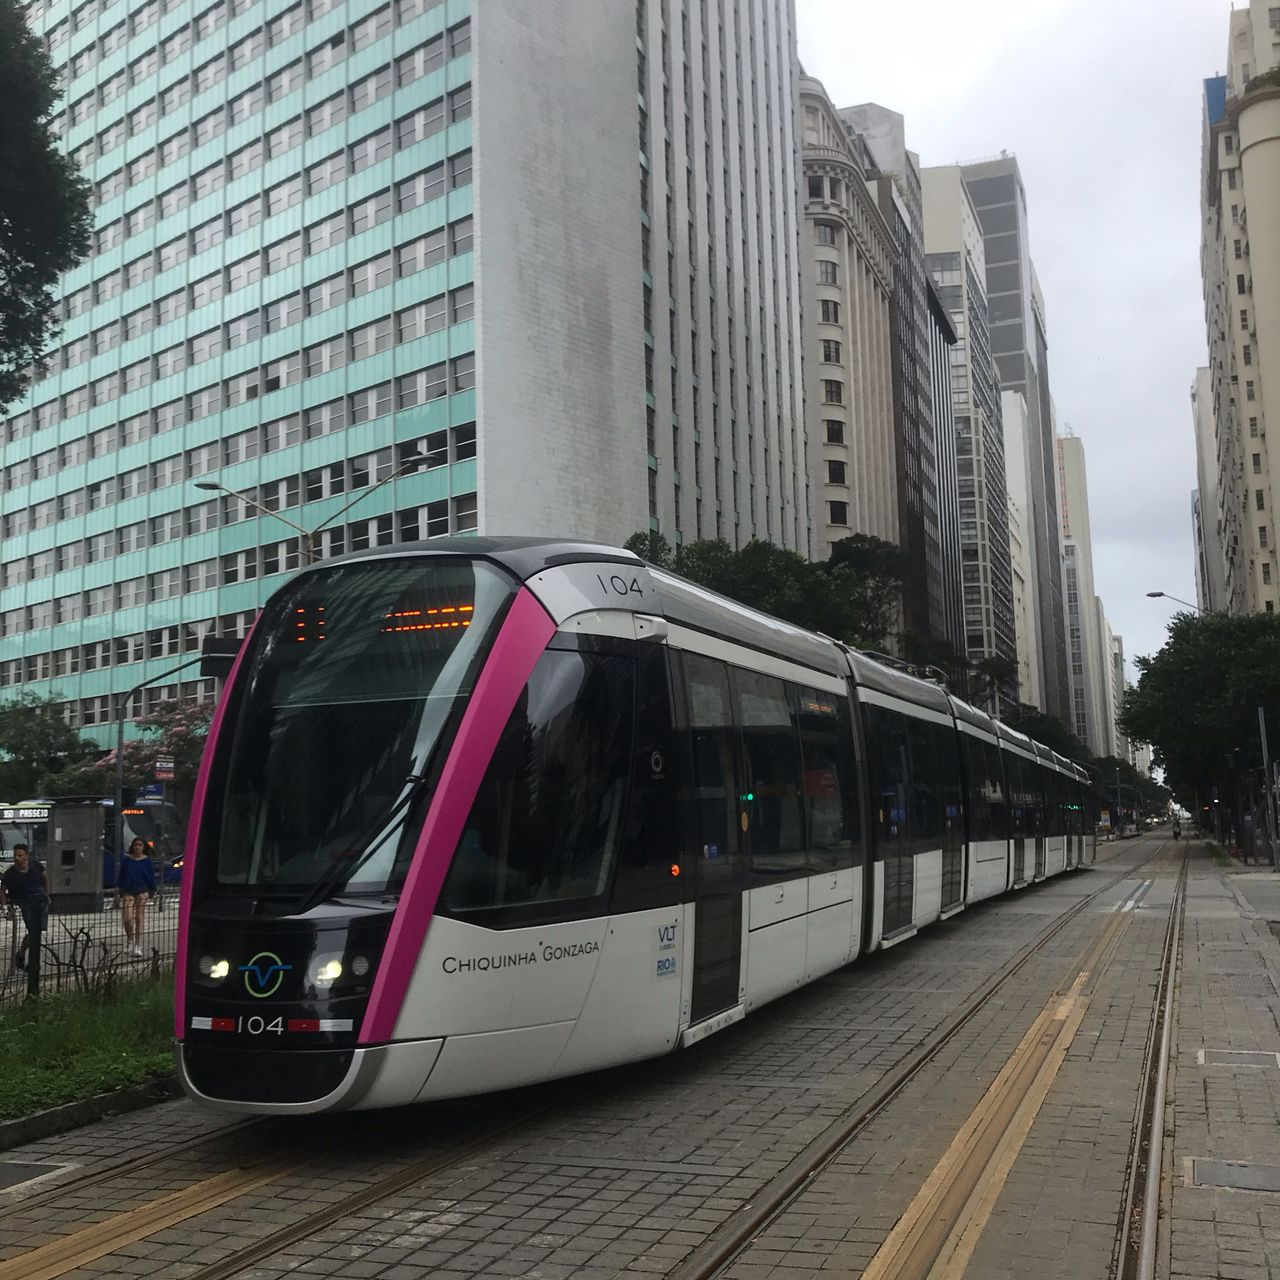 architecture, transportation, public transportation, rail transportation, mode of transportation, built structure, building exterior, city, track, railroad track, train, building, train - vehicle, day, outdoors, travel, motion, no people, land vehicle, office building exterior, skyscraper, financial district